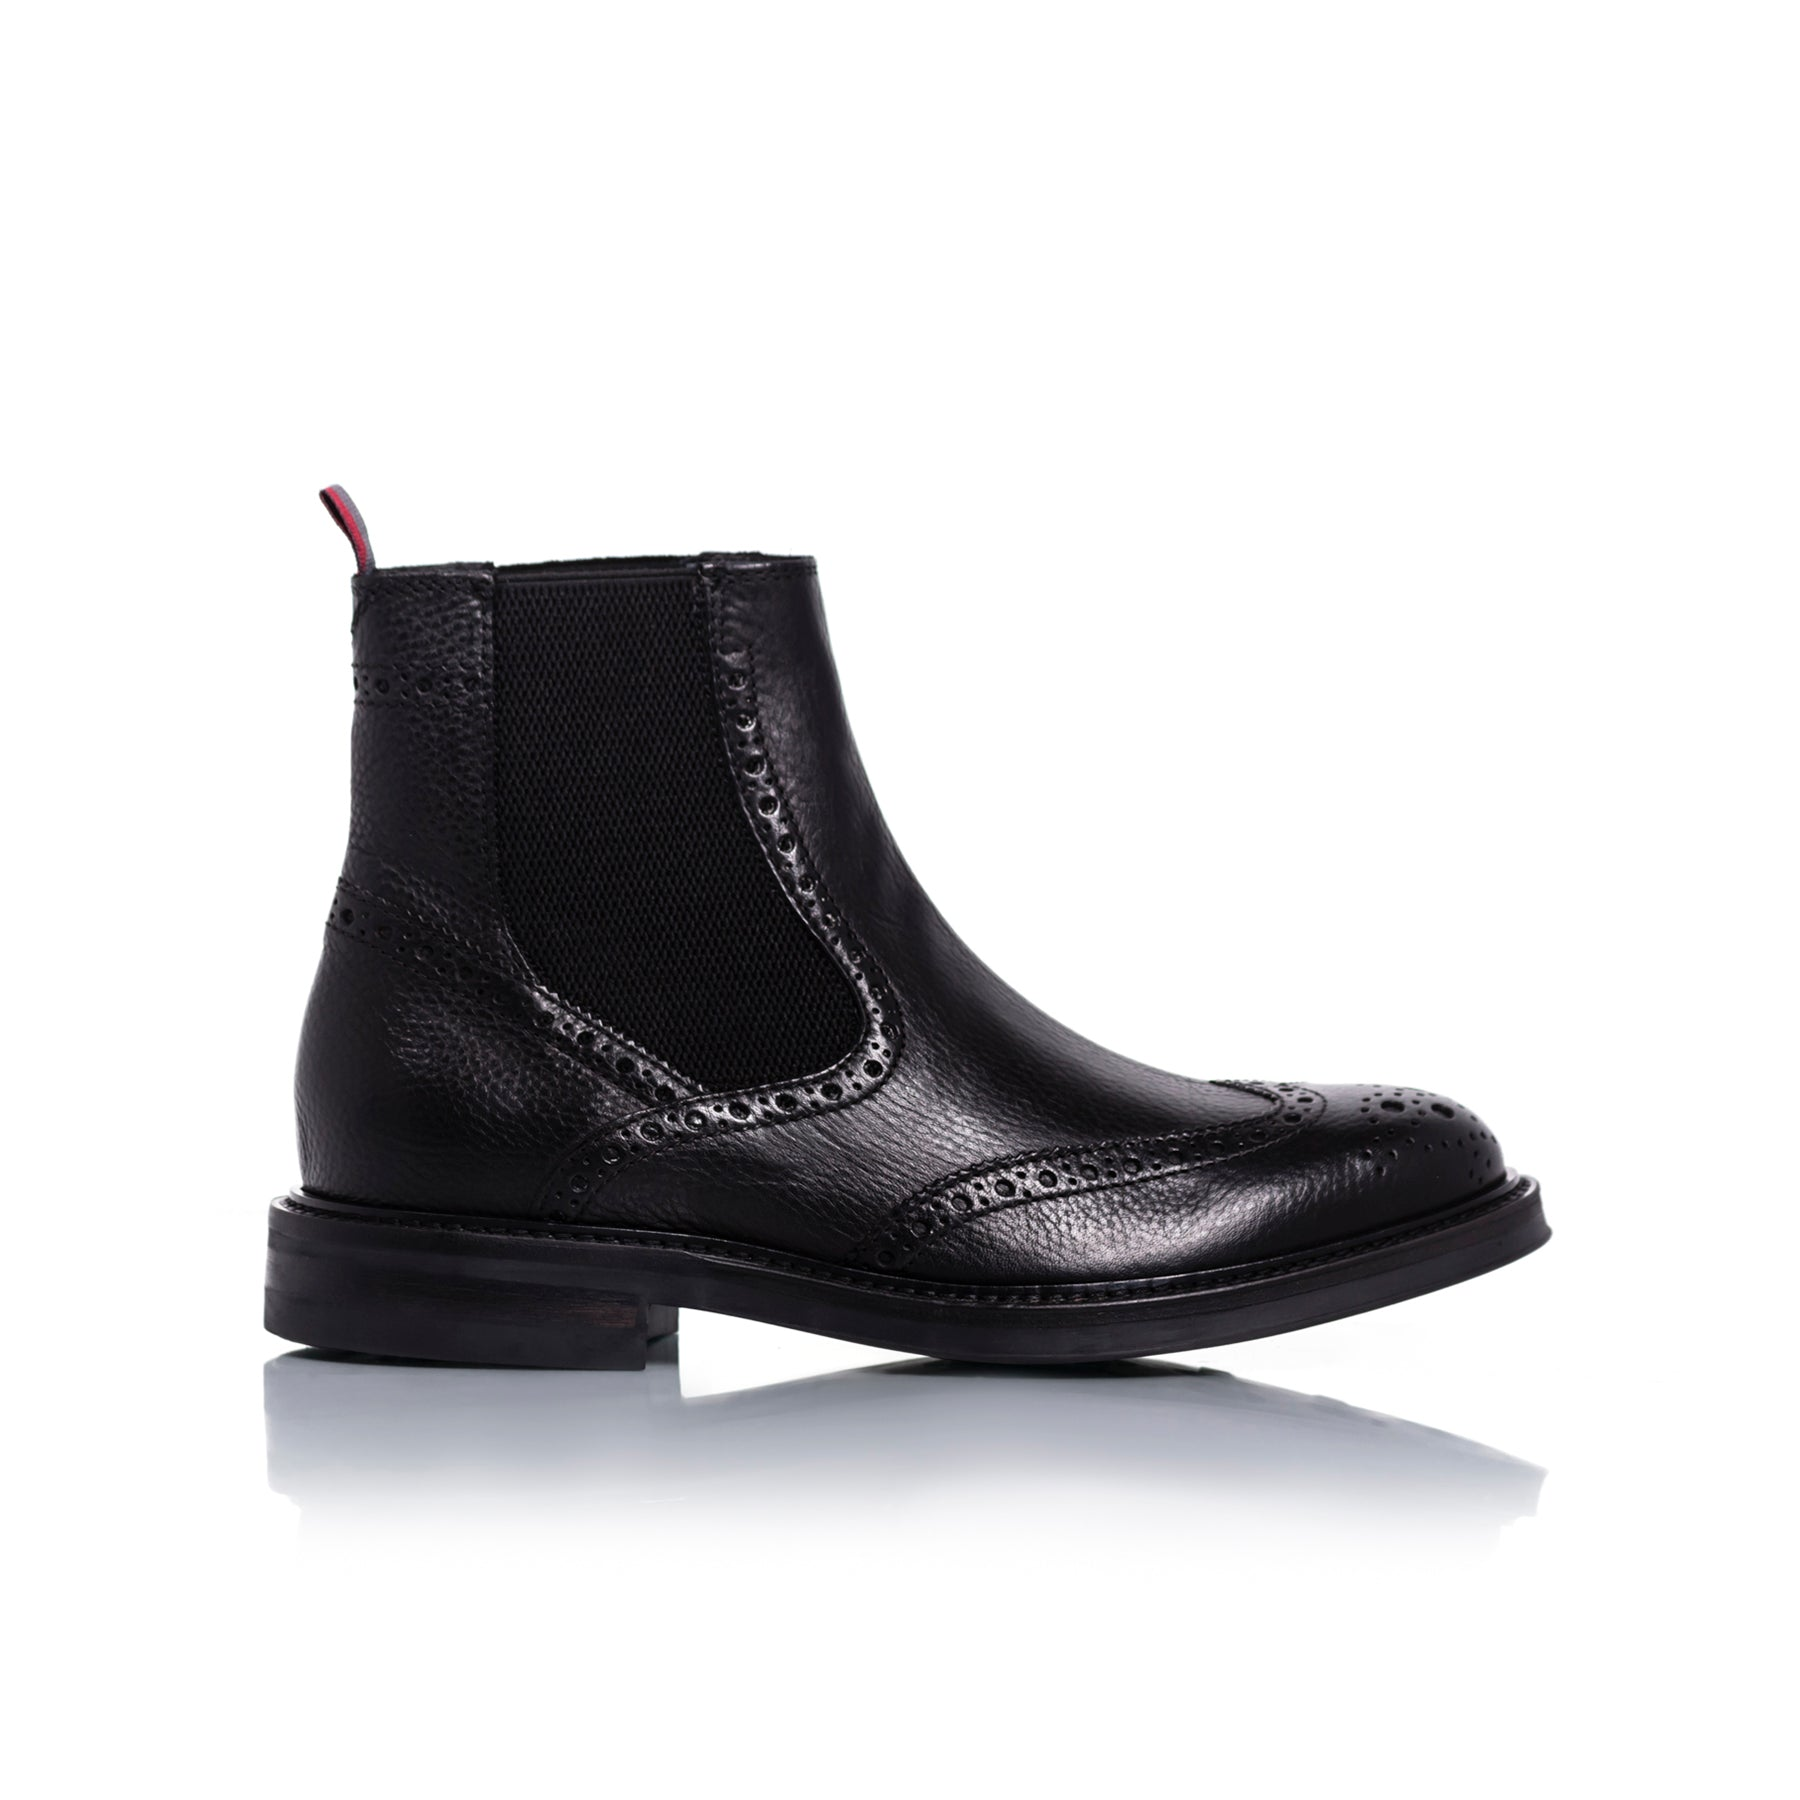 Basil Black Leather Boots